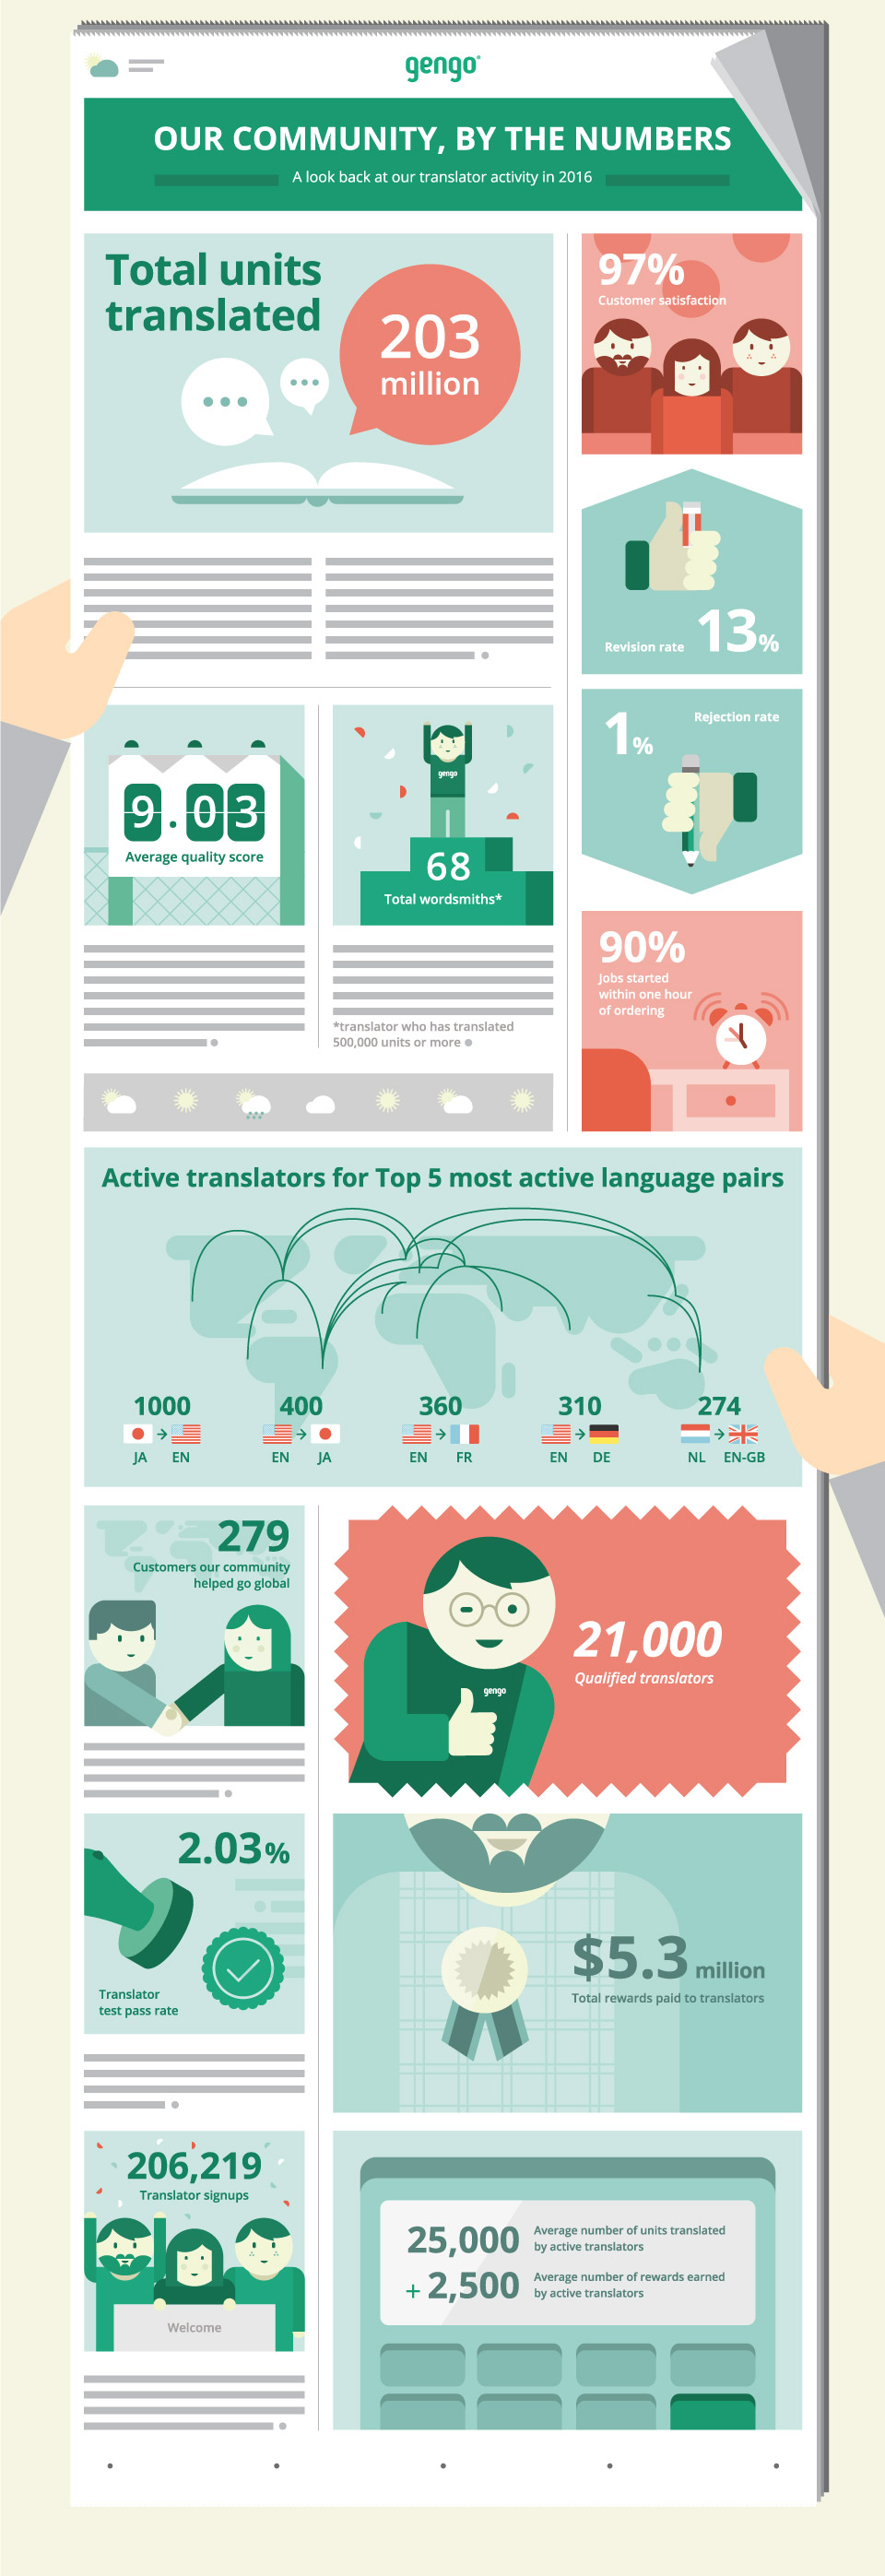 gengo japan human translation service - Infographic - community stats